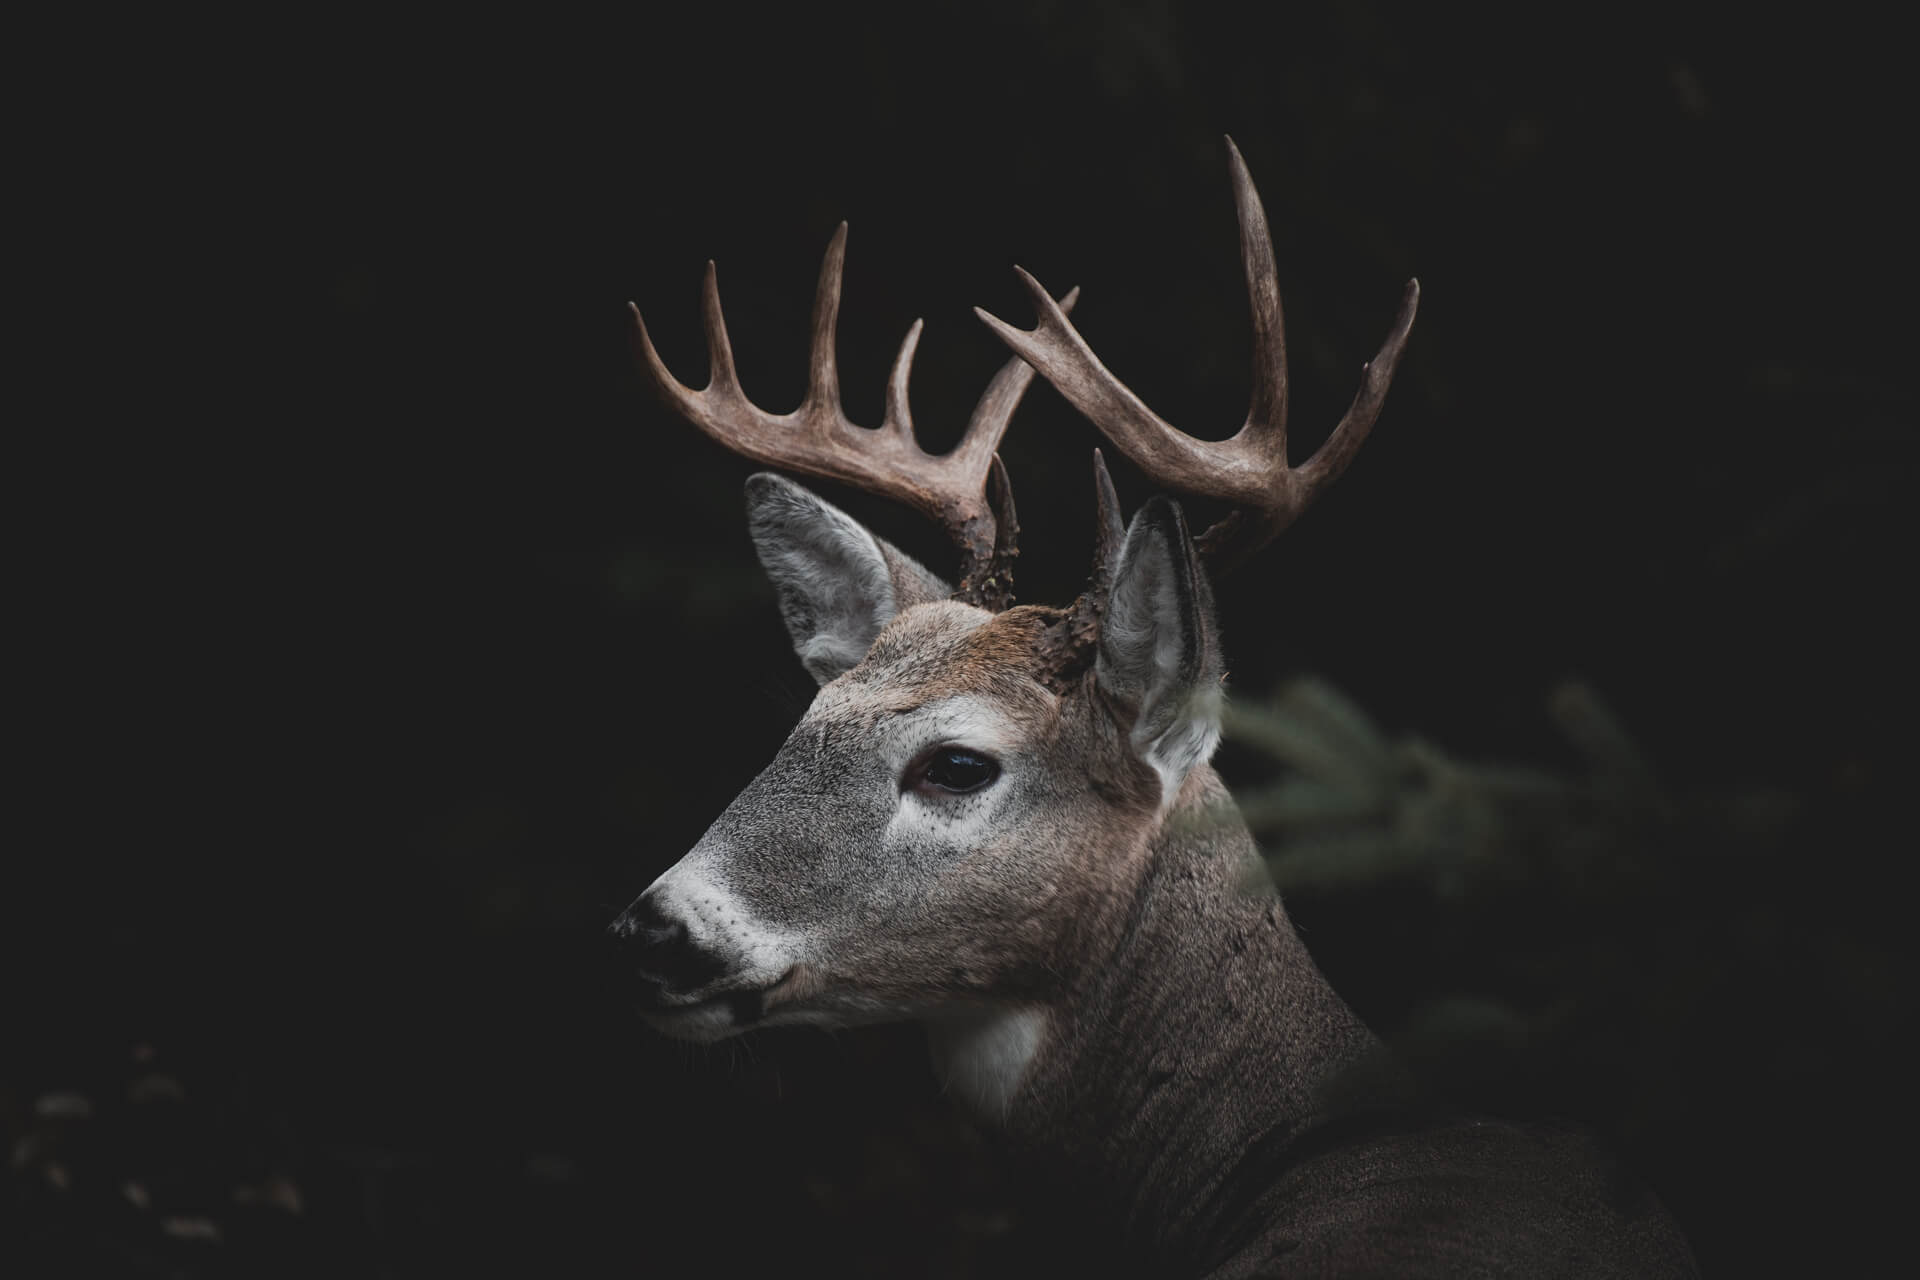 A White tailed deer in the dark forest